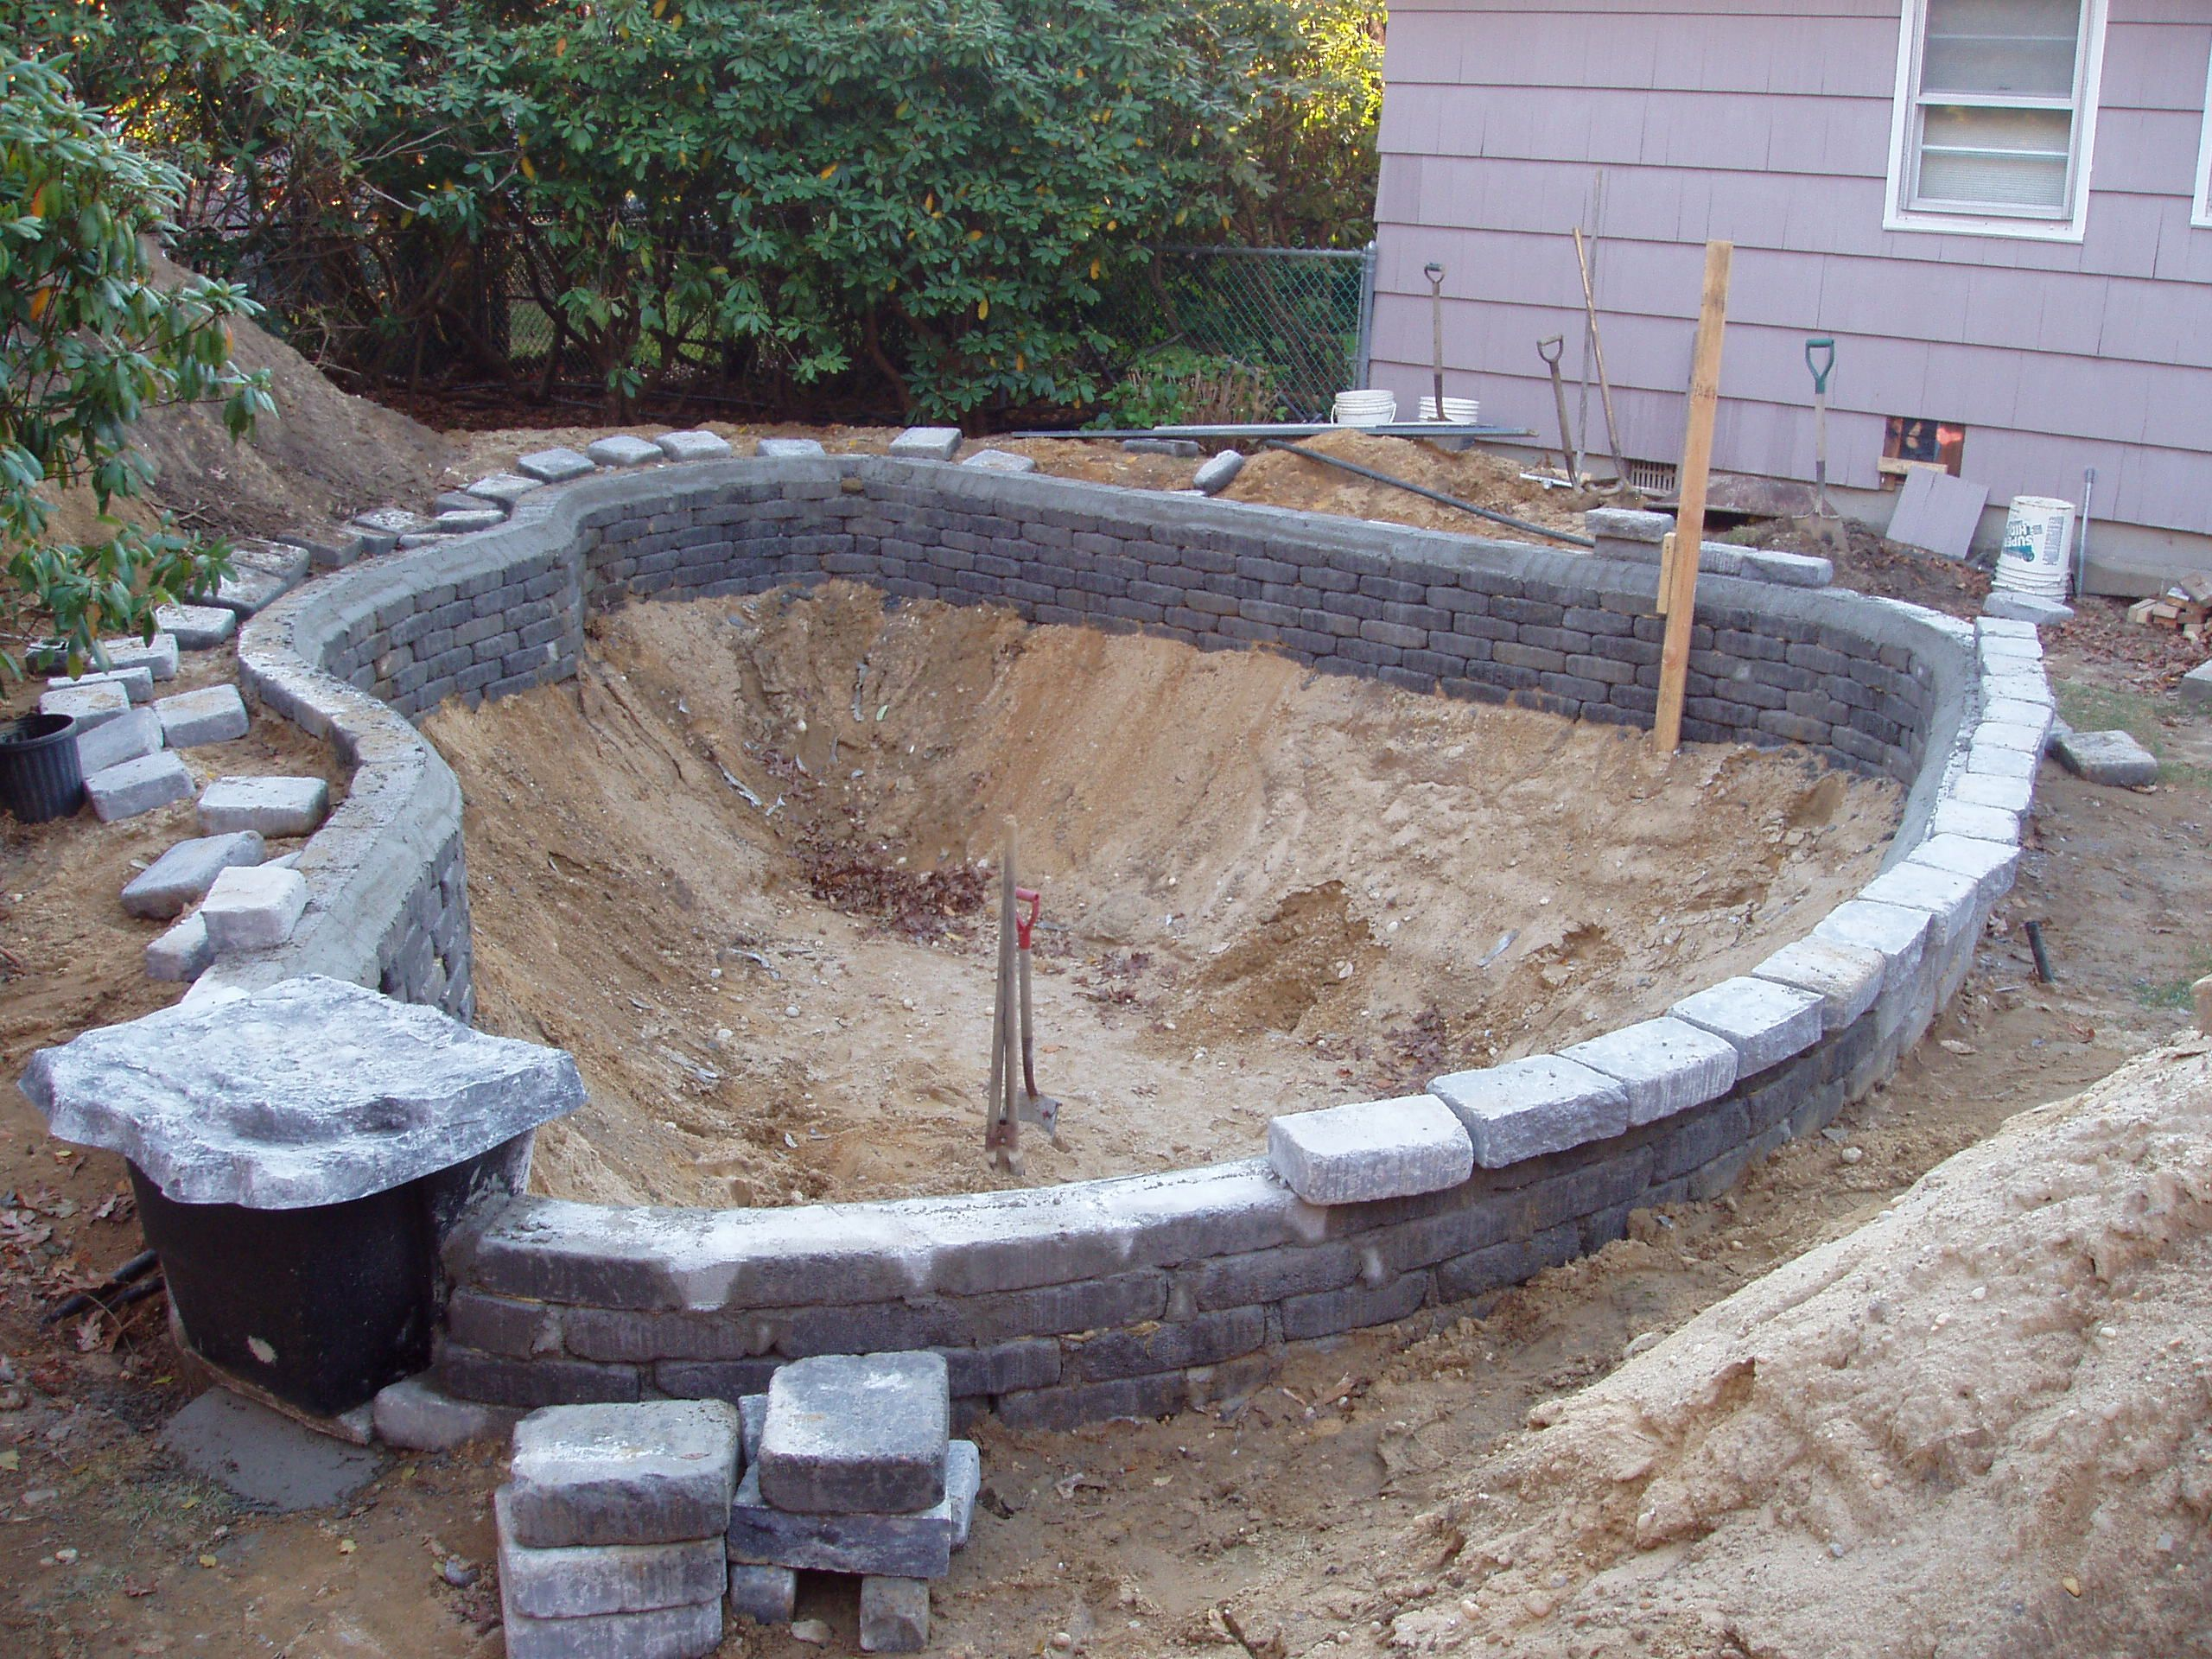 Pond design and construction google search aquaponics for Mini fish pond design